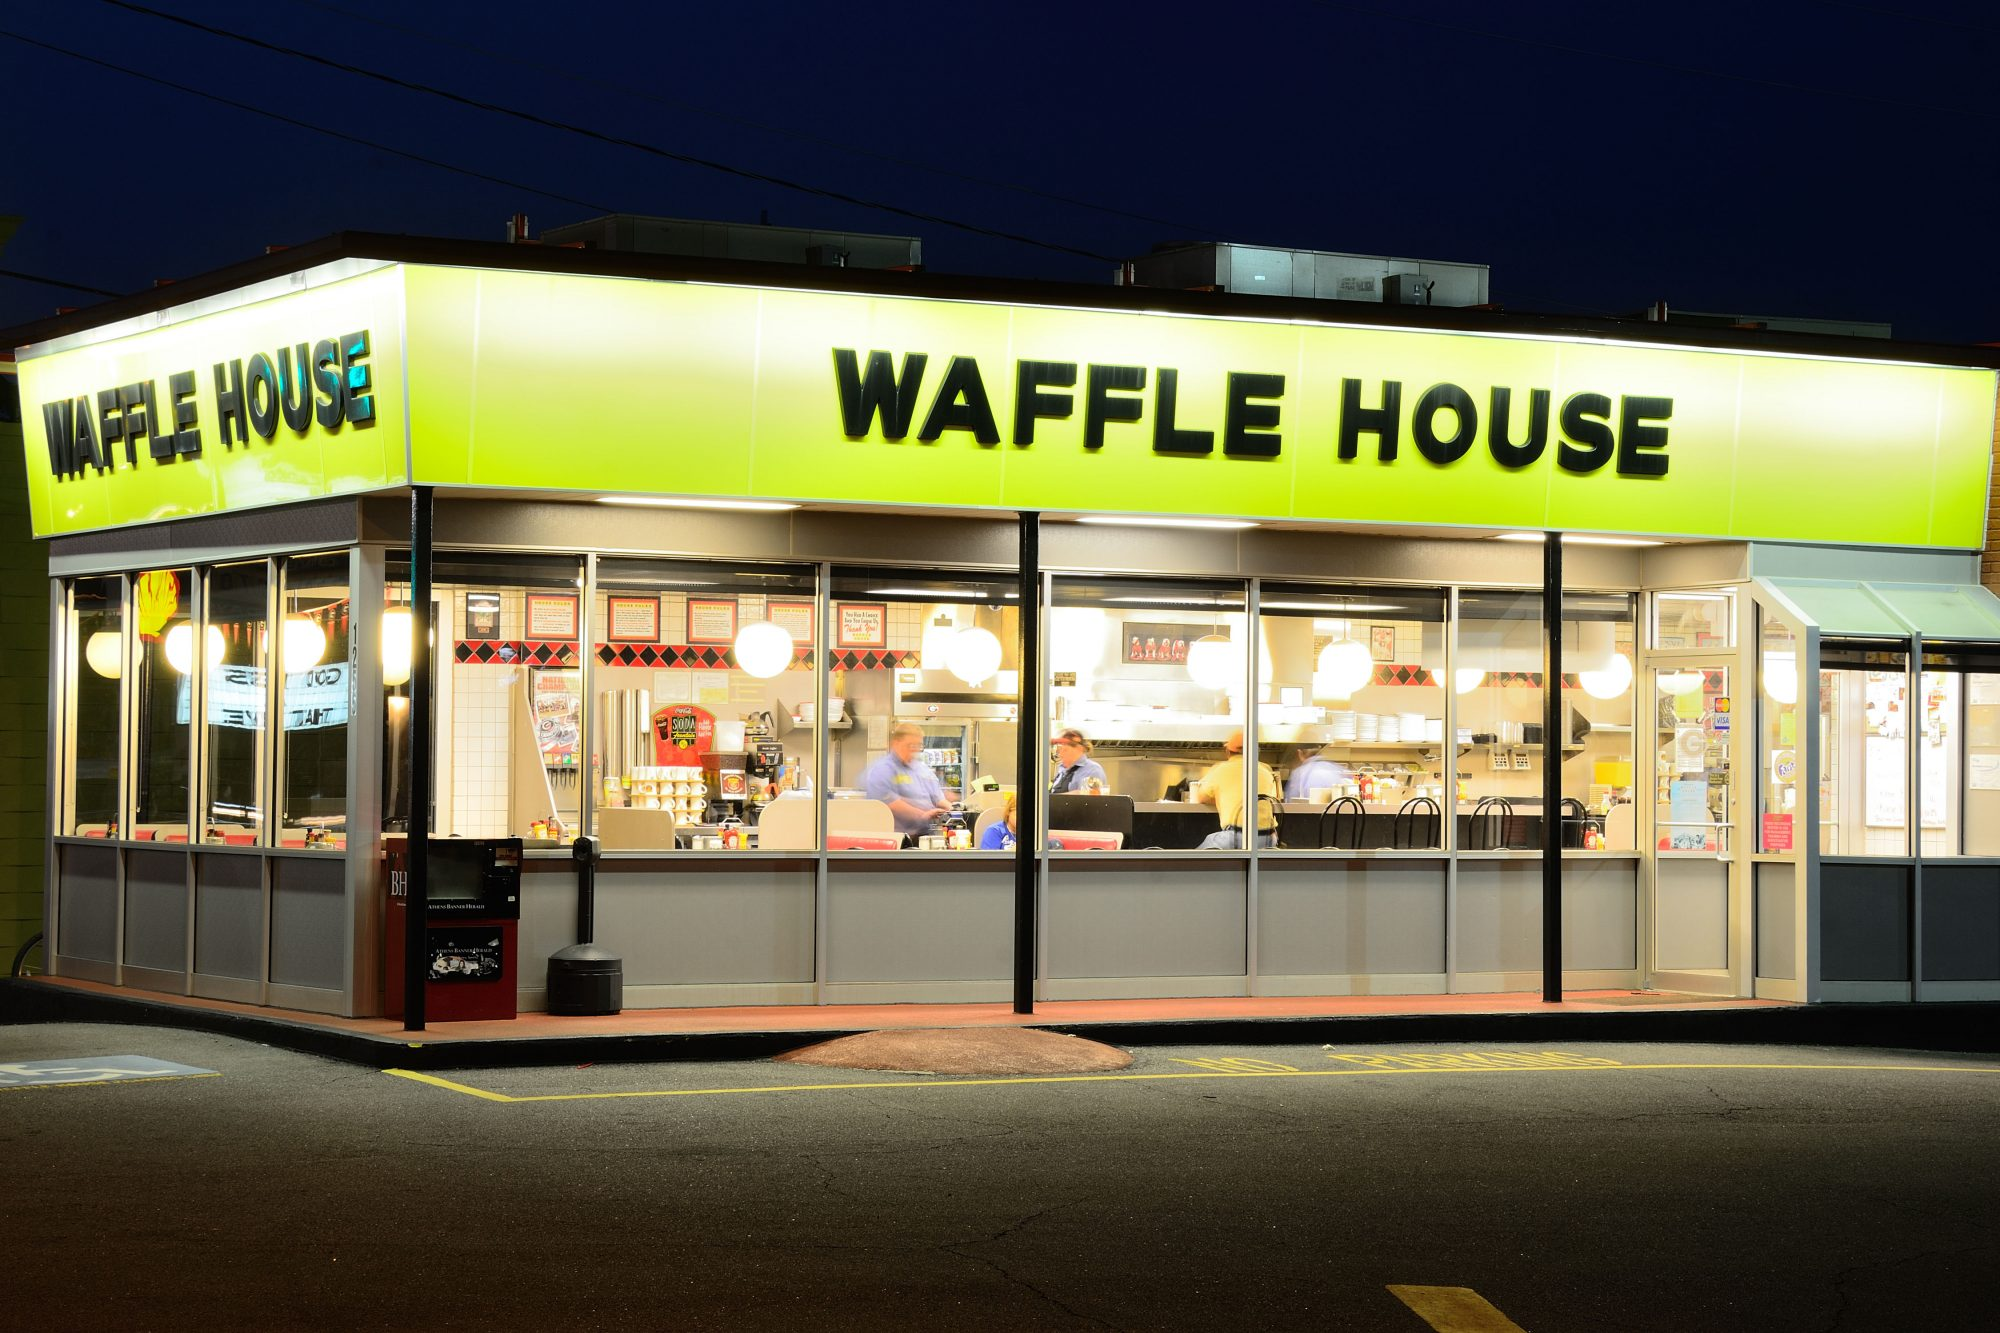 Waffle House Is Dimming the Lights and Taking Reservations for Valentine's Day